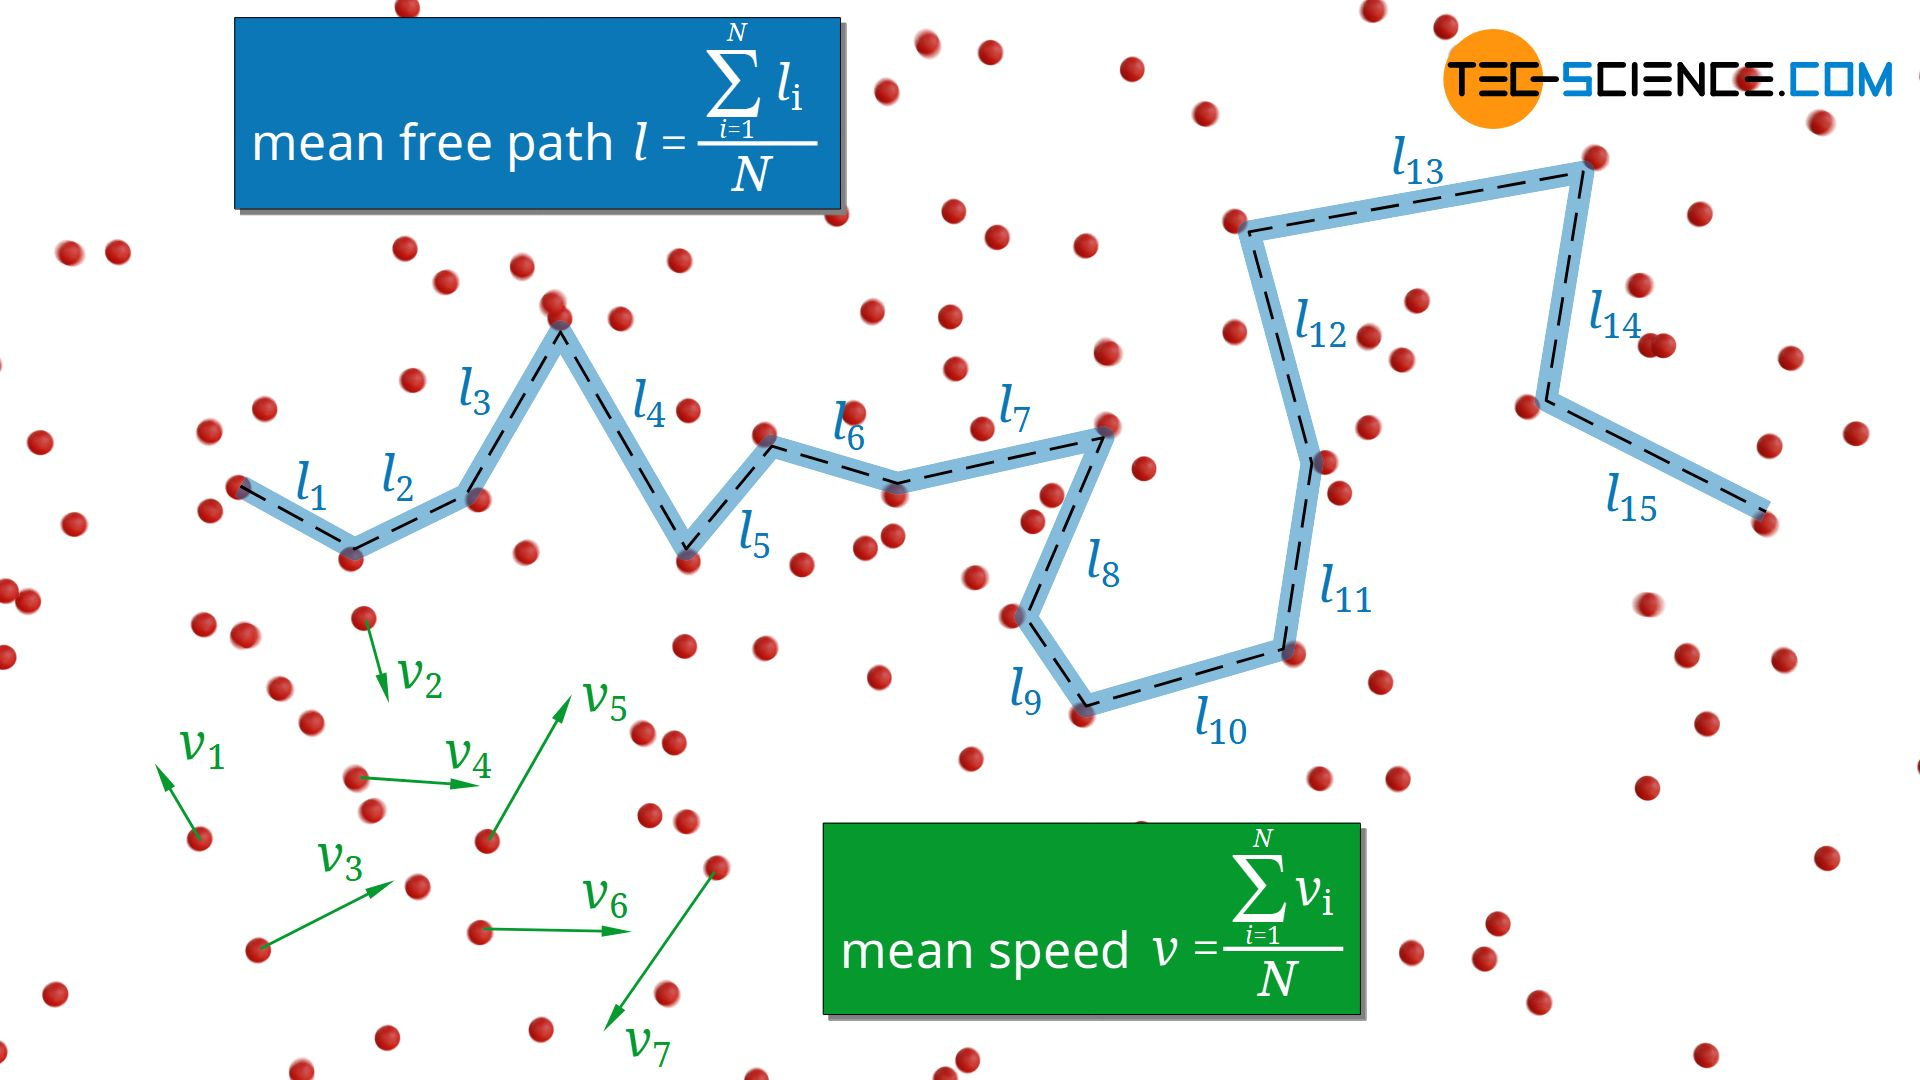 Mean free path in a thin gas with low pressure and a dense gas with high pressure